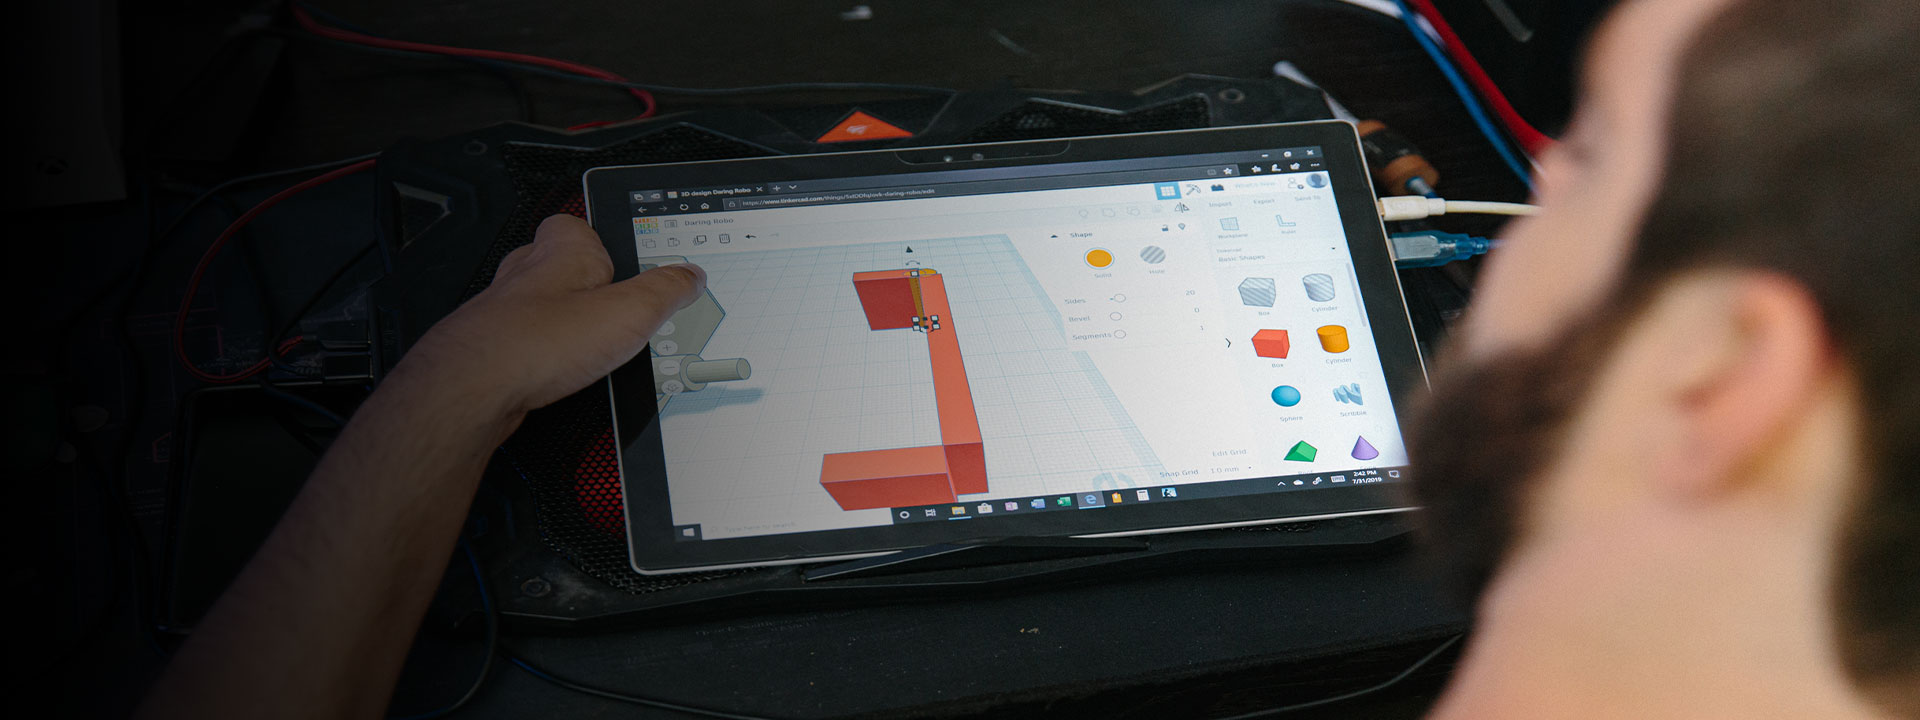 Spencer modifie ses dessins sur son appareil Surface.